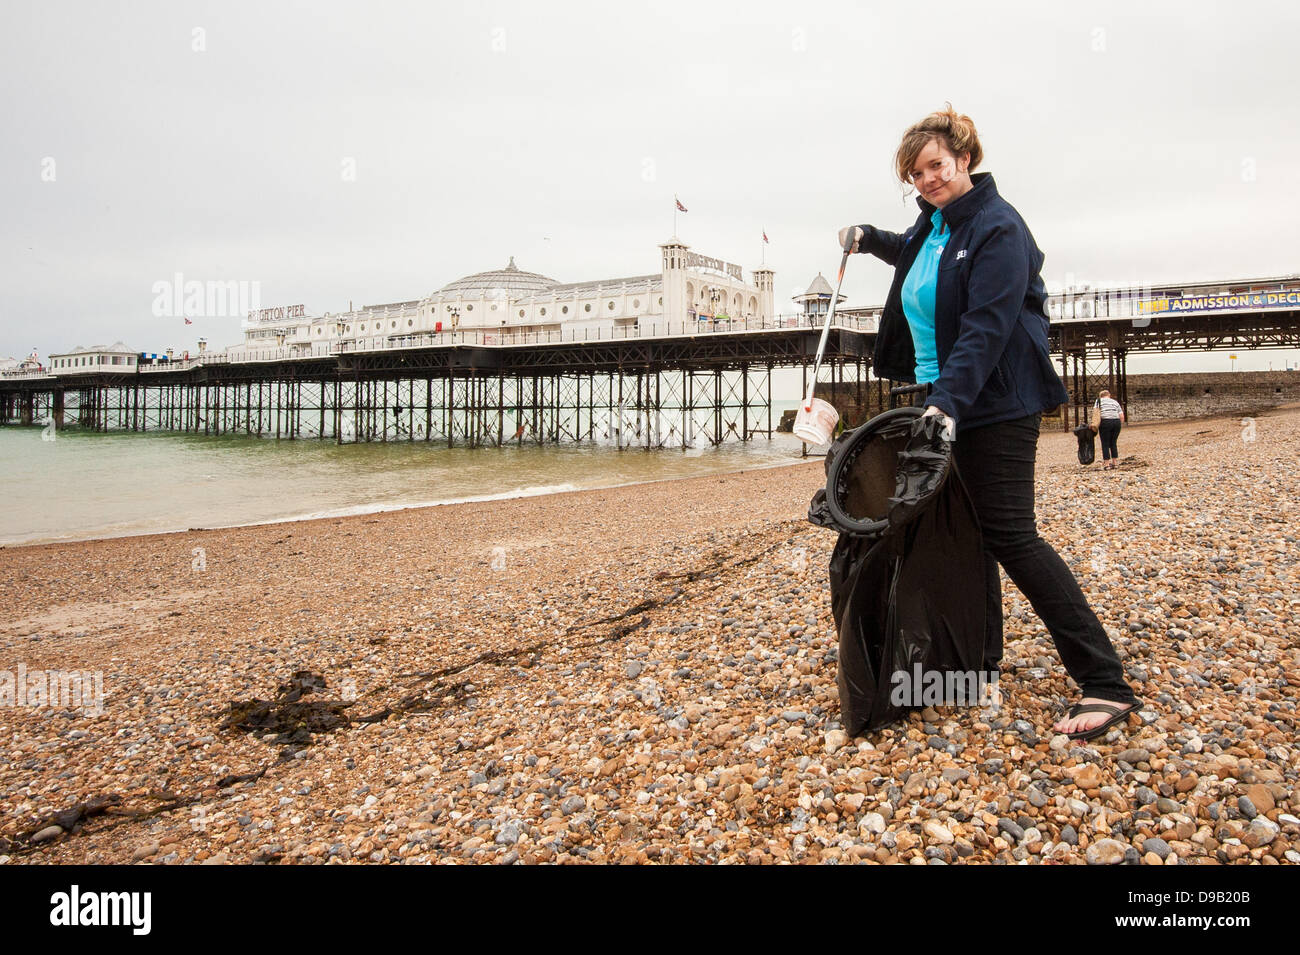 Brighton, UK. 17th June, 2013. Staff from Brighton SeaLife Centre protecting the environment, marine and human life - Stock Image